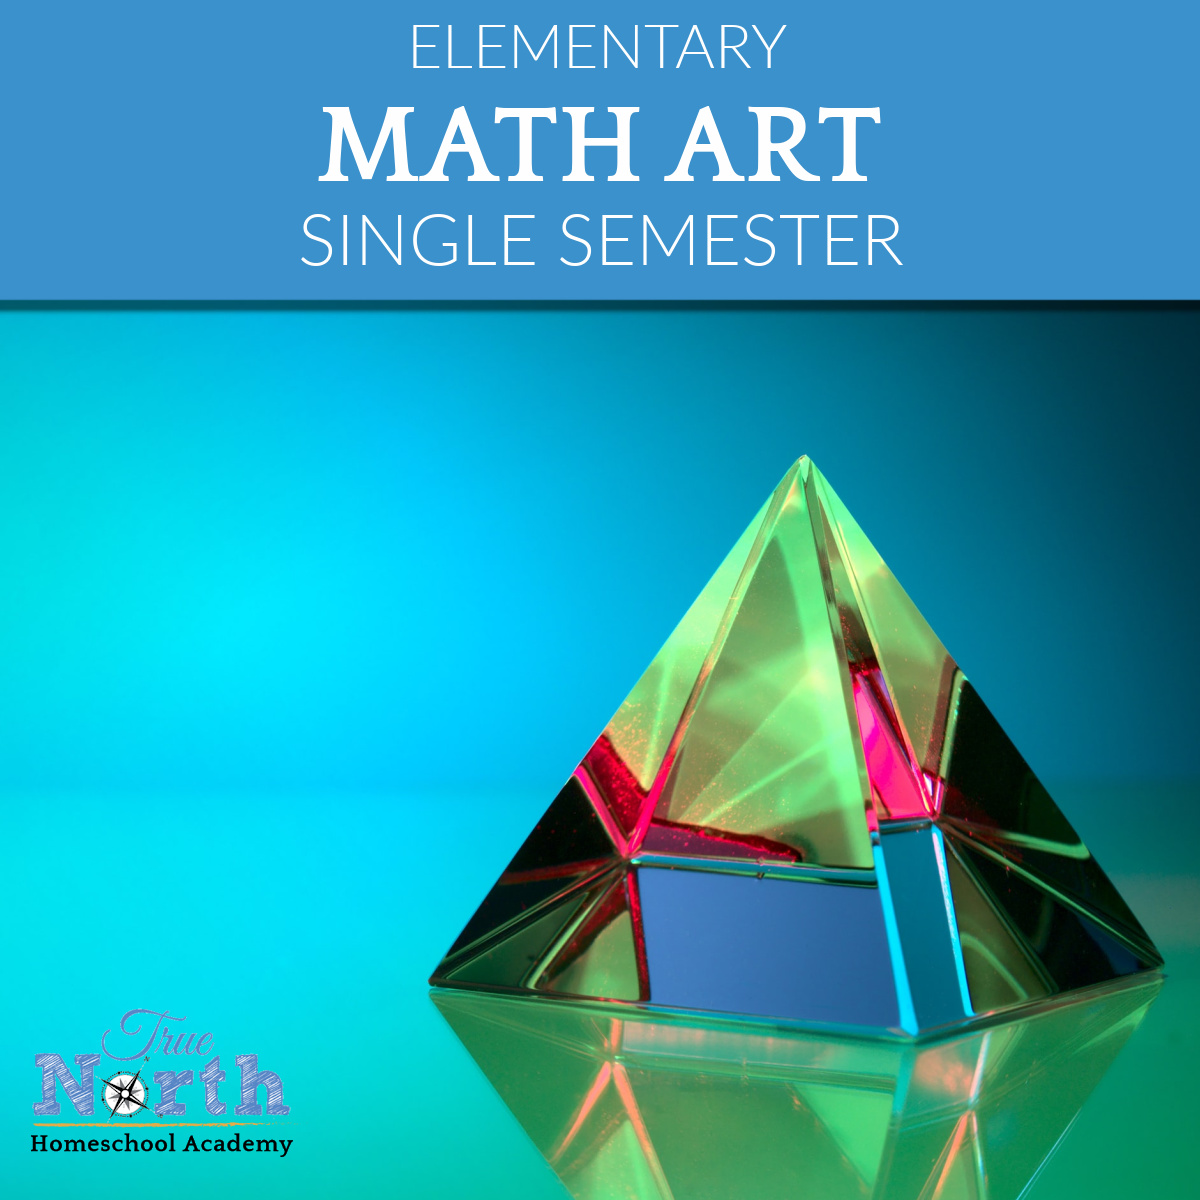 Real-world, hands-on semester Math course. Integrated lessons on tessellations, symmetry, fractals, the Fibonacci sequence & golden ratio.